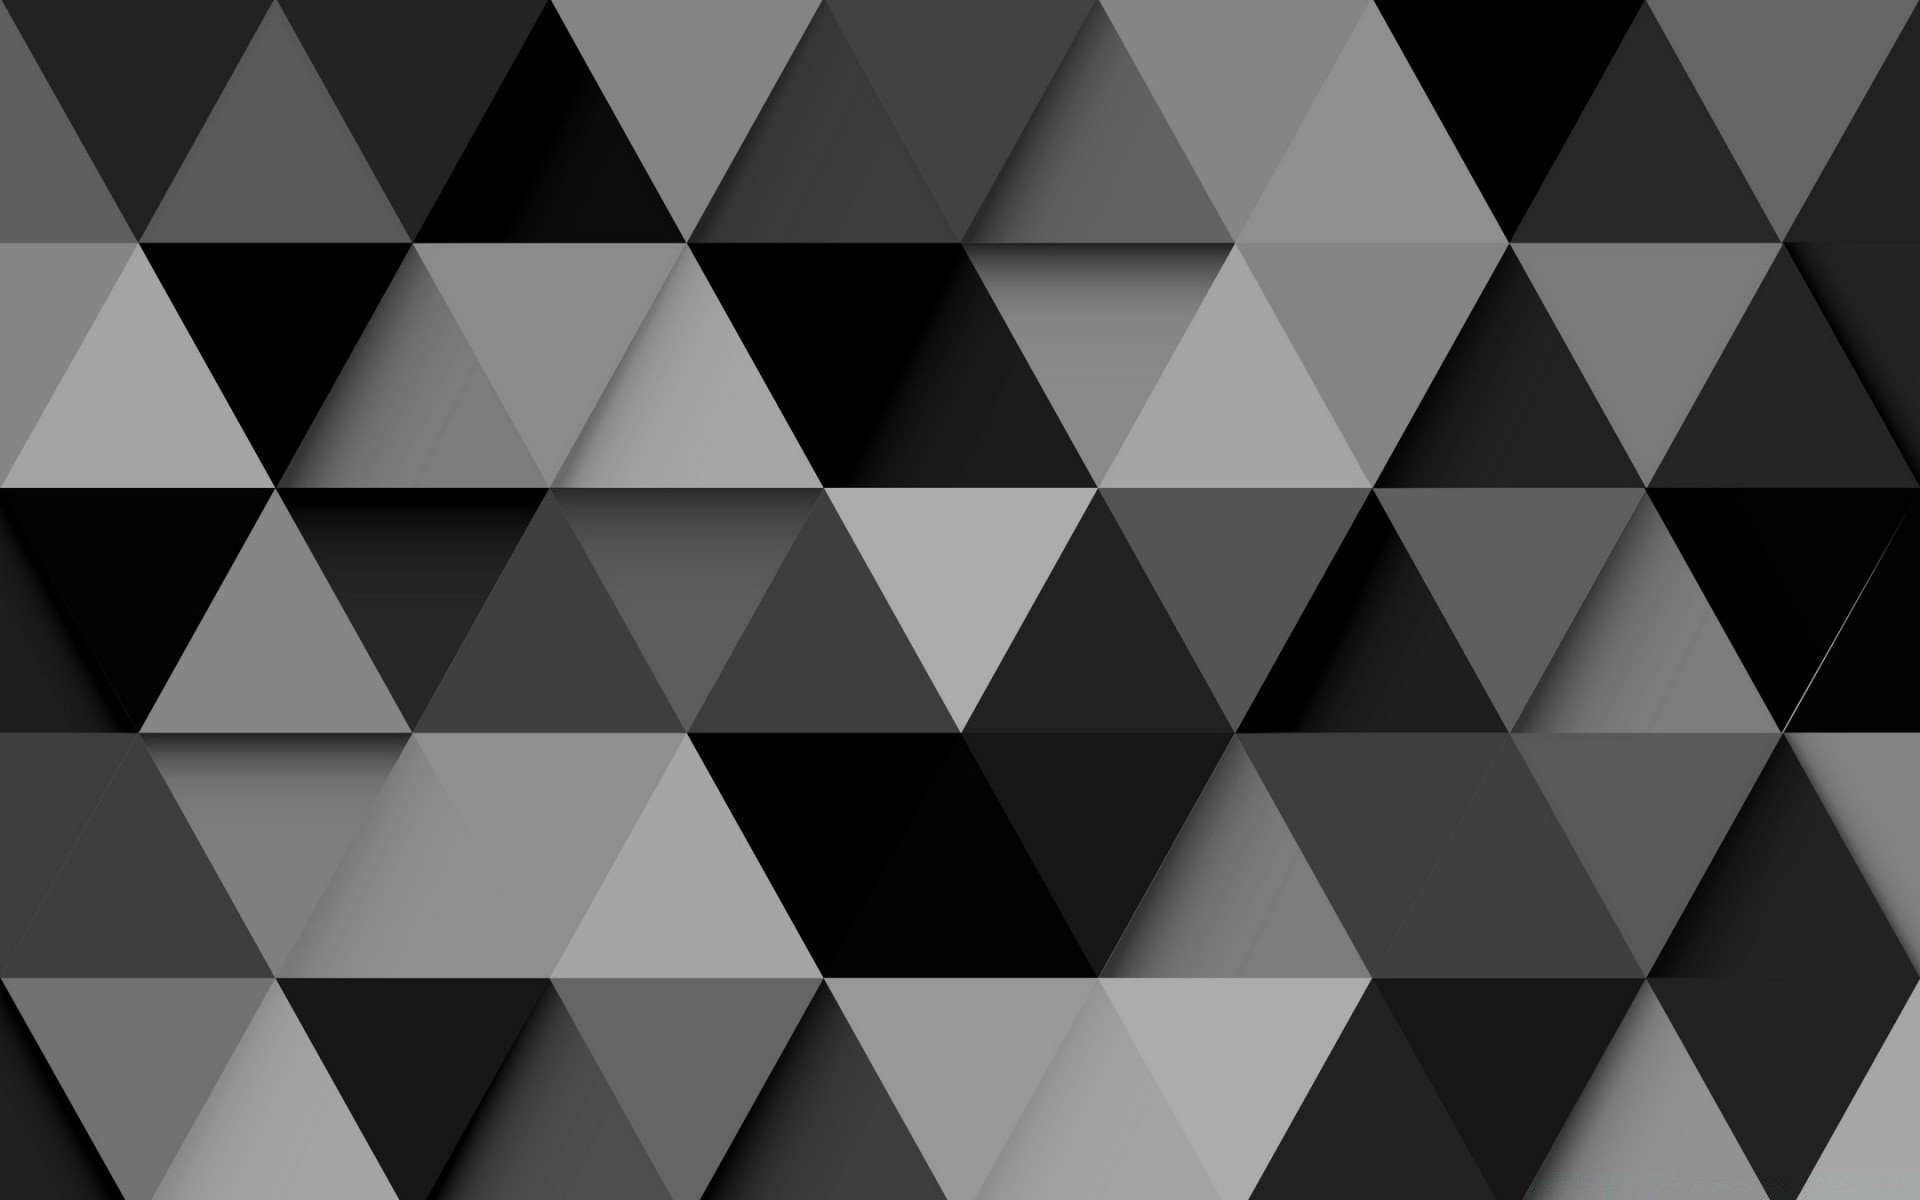 free backgrounds seamless patterns amp textures